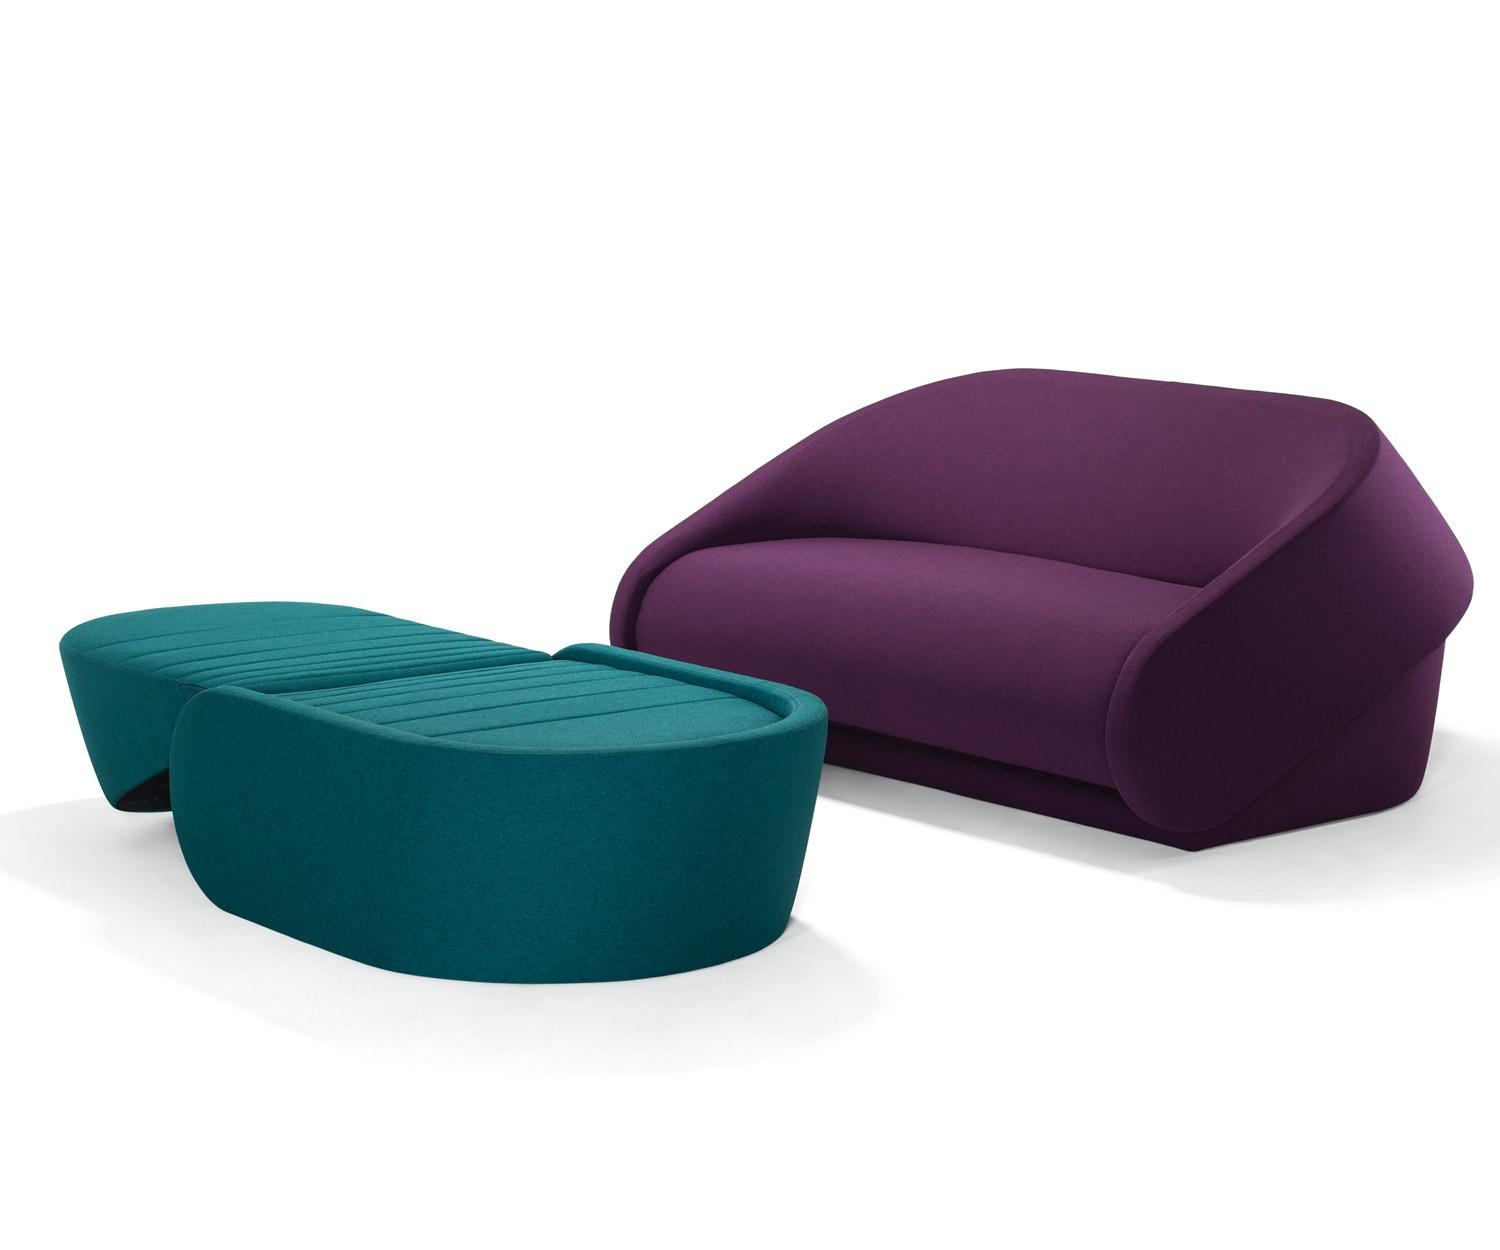 Bettsofa Mit Bettkasten Prostoria Schlafsofa Up-lift